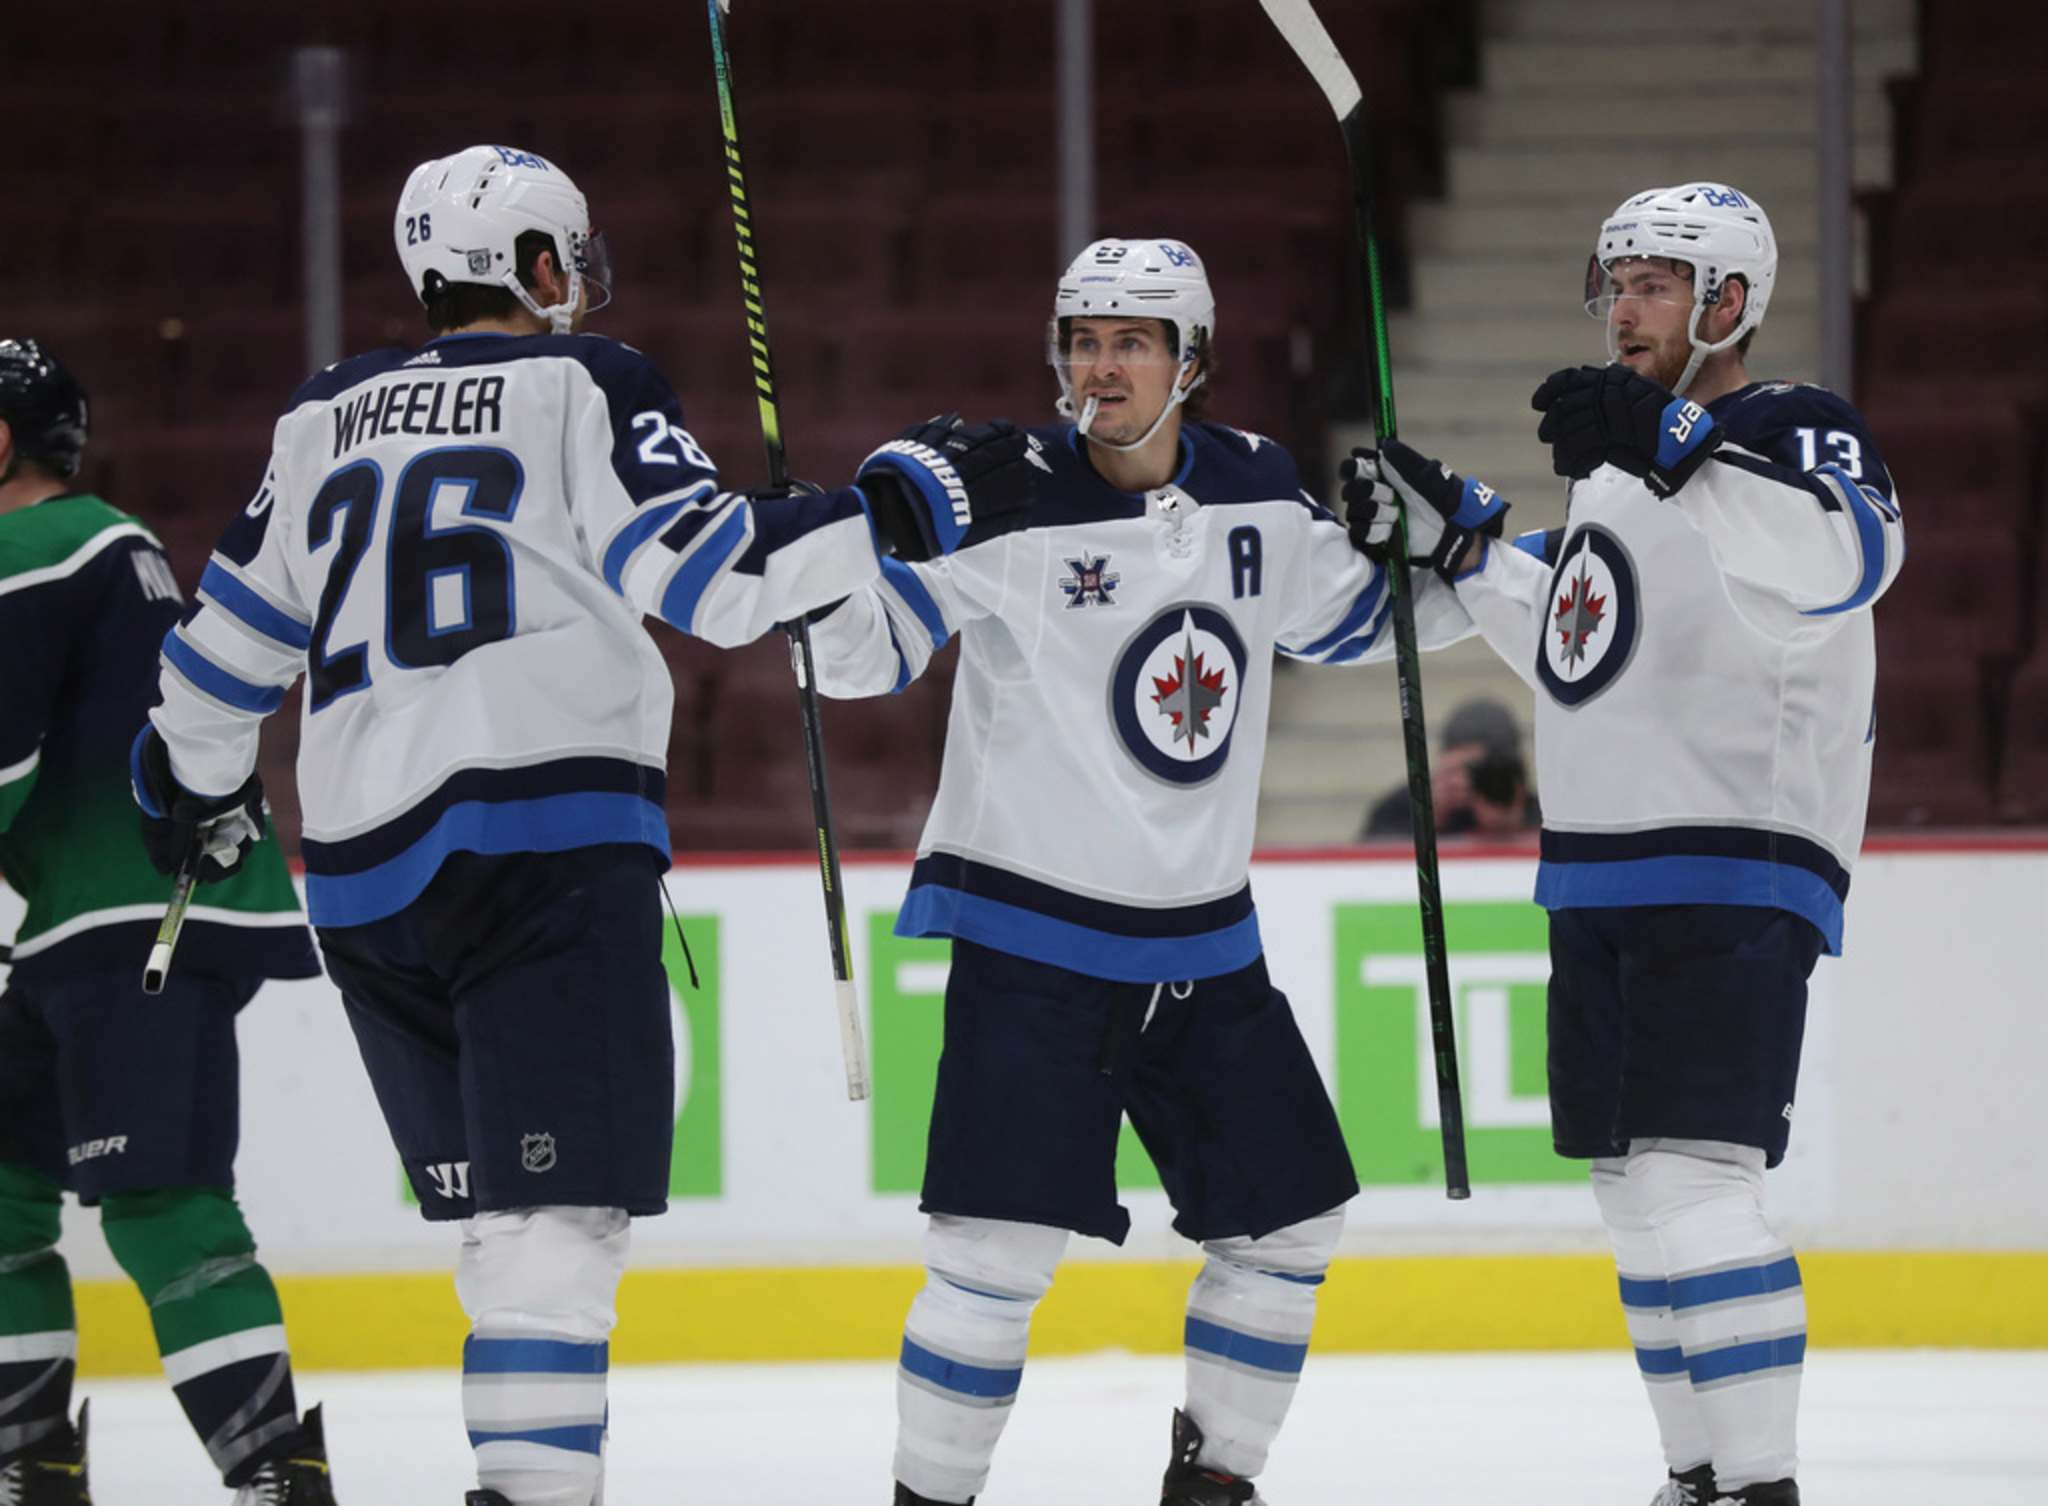 Blake Wheeler and Mark Scheifele celebrate with Pierre Luc Dubois after Dubois scored his first goal with the Winnipeg Jets during the second period against the Vancouver Canucks in Vancouver, Sunday. (TREVOR HAGAN / WINNIPEG FREE PRESS)</p>